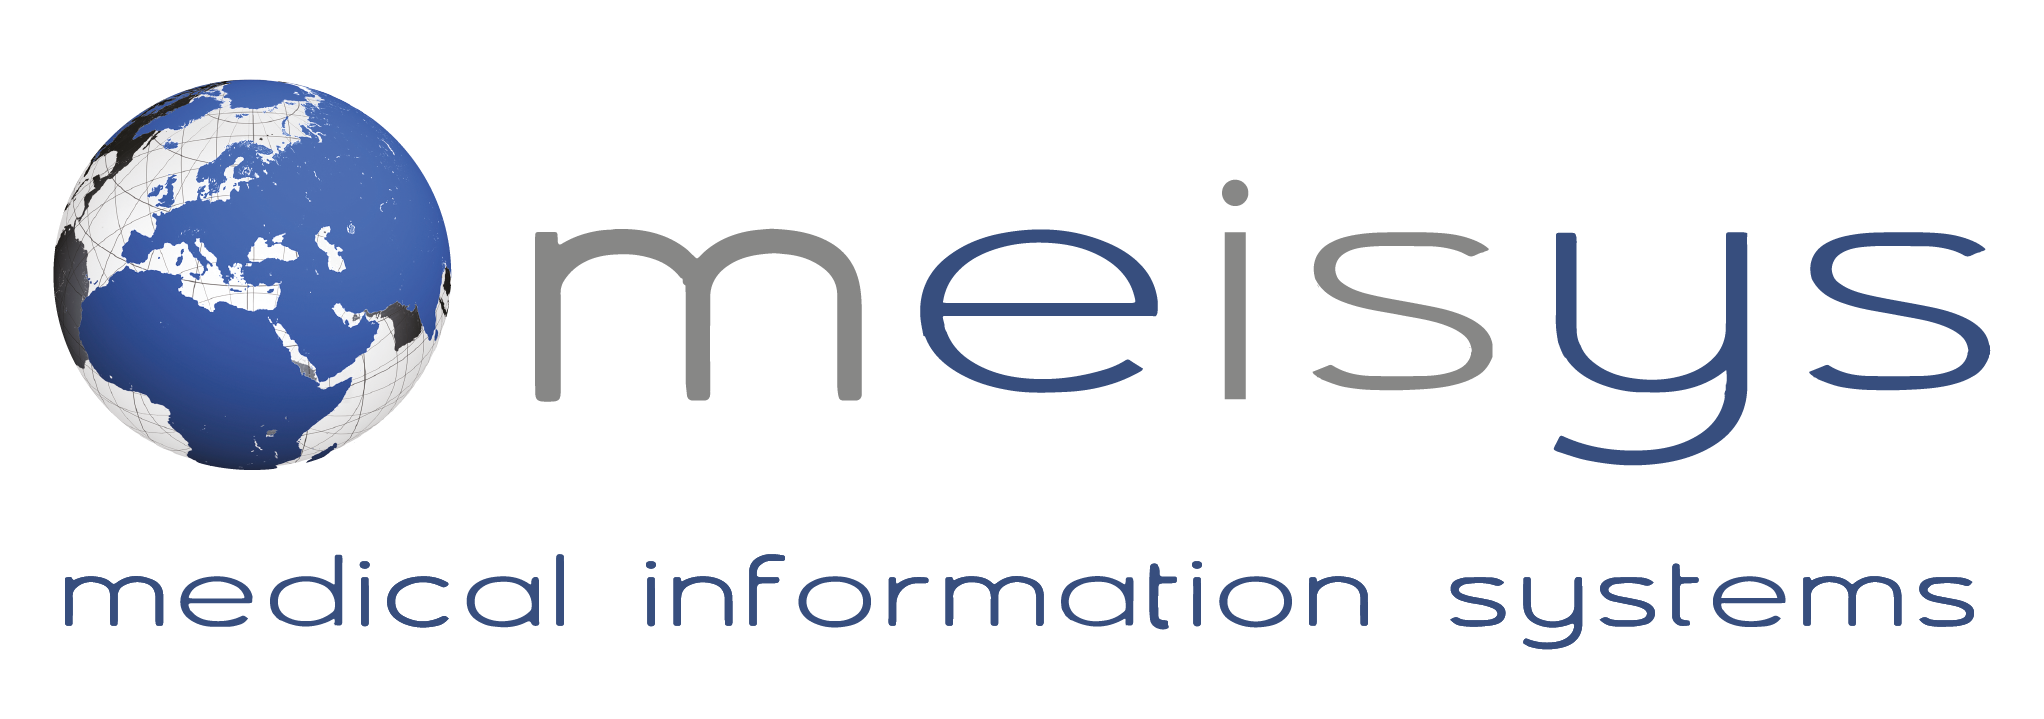 Meisys – Medical Information Systems